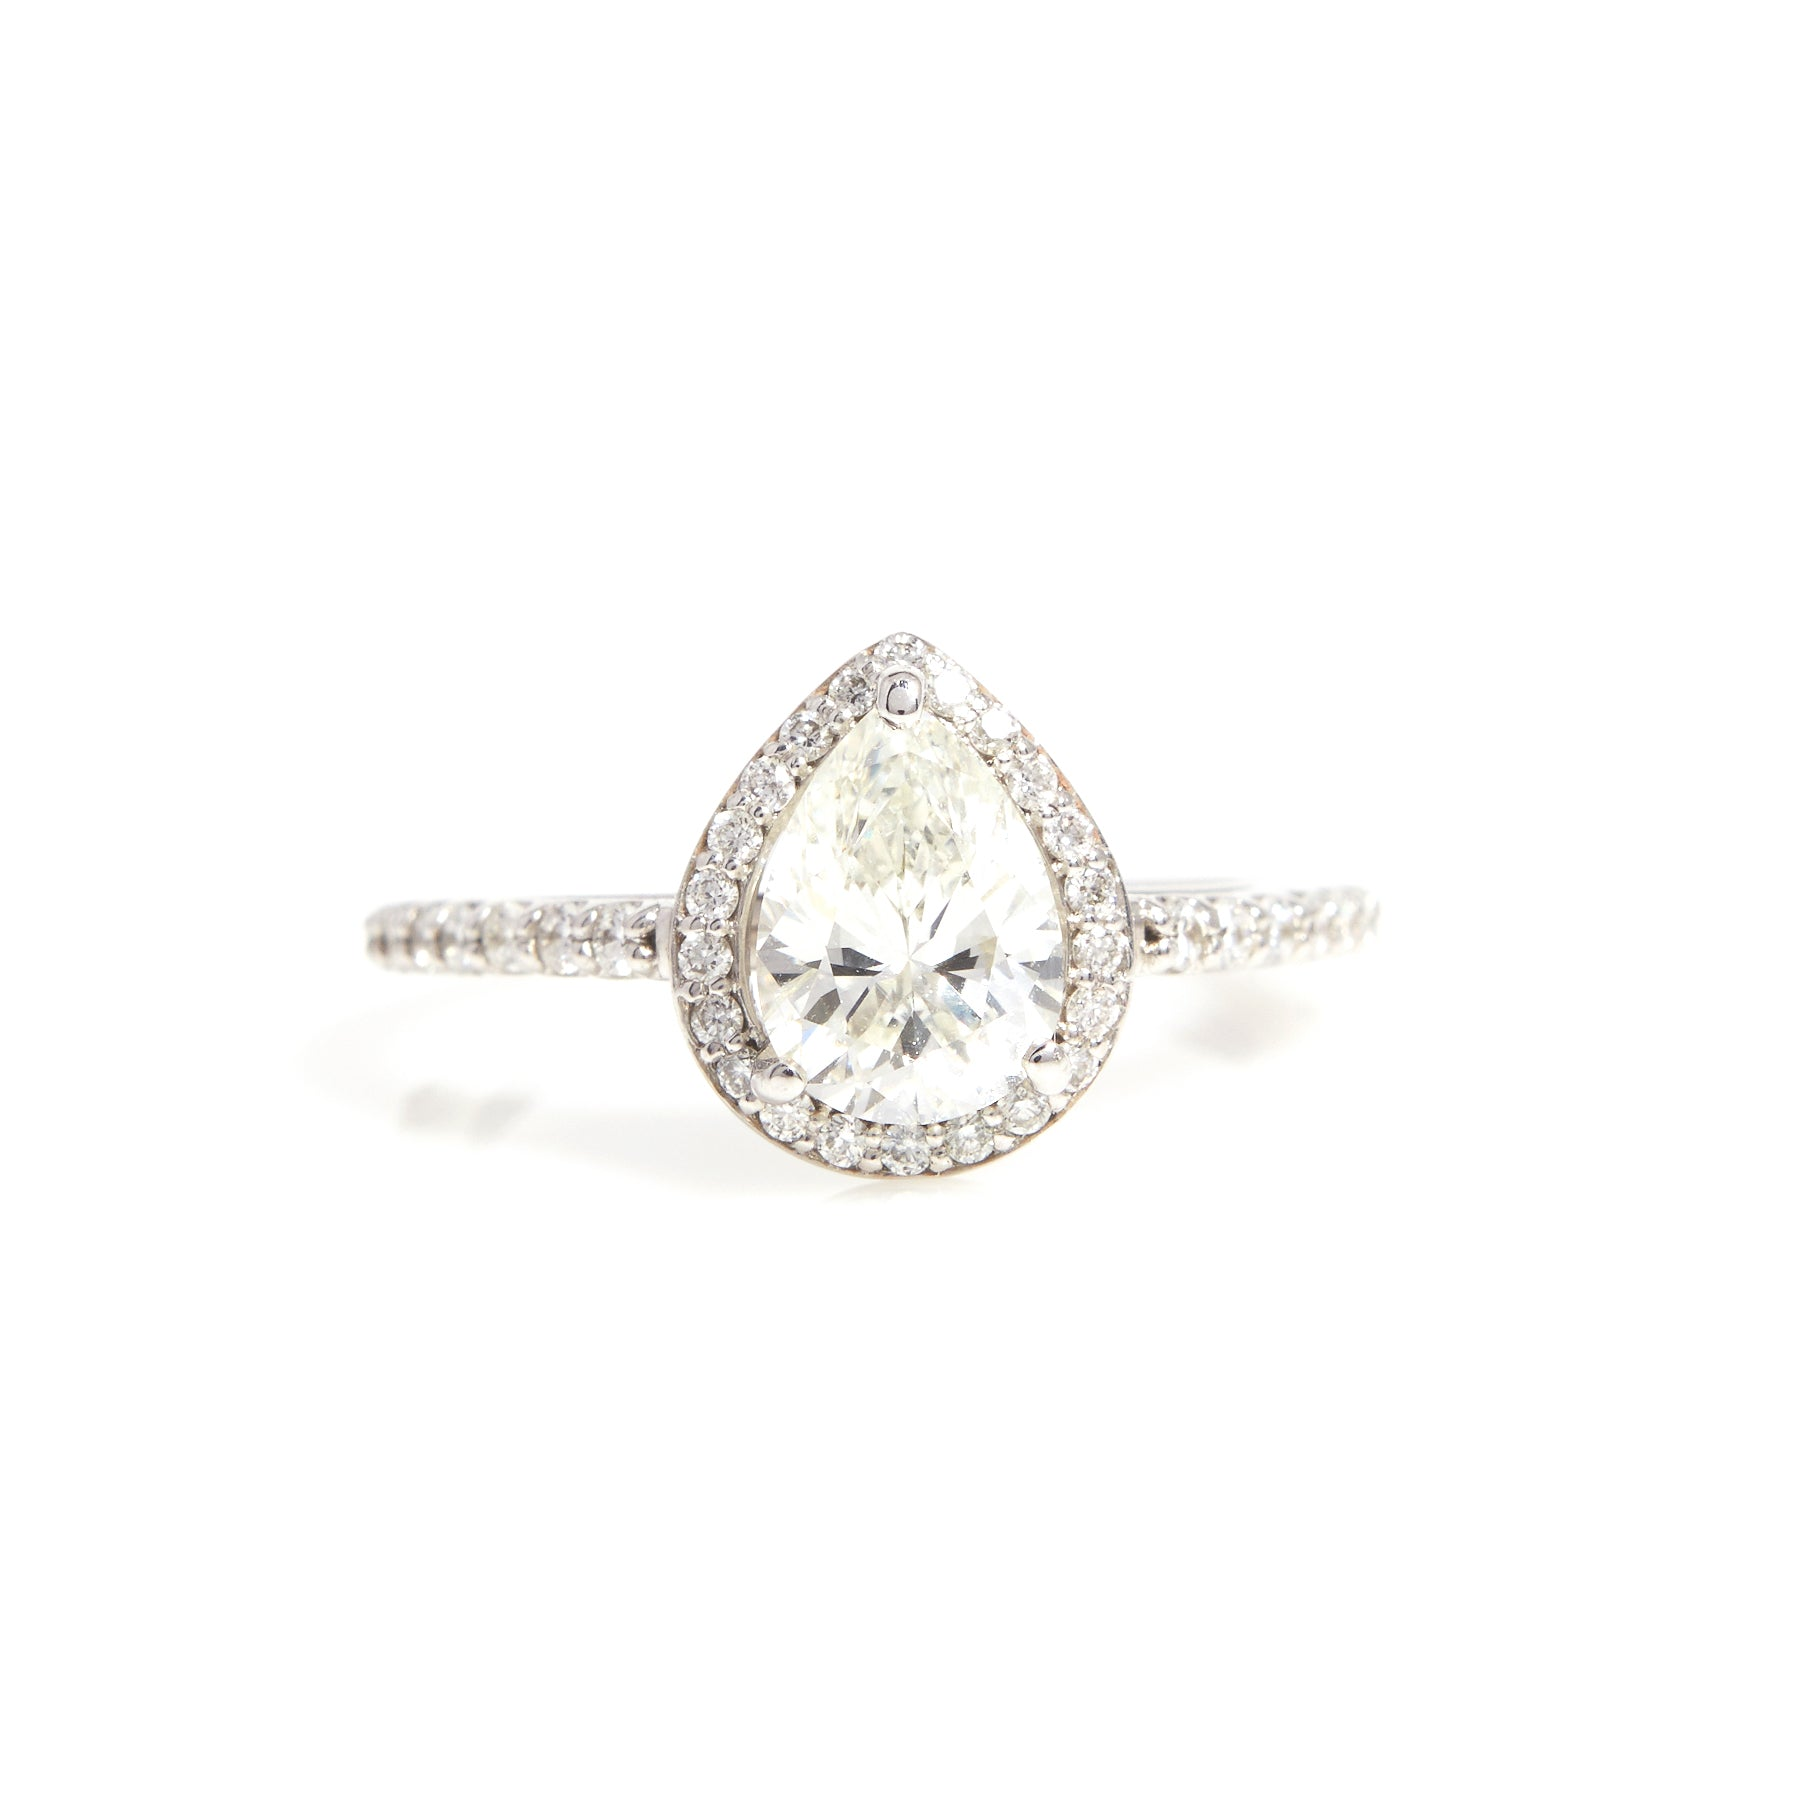 Pear Shaped Diamond with Halo in White Gold - Sindur Style